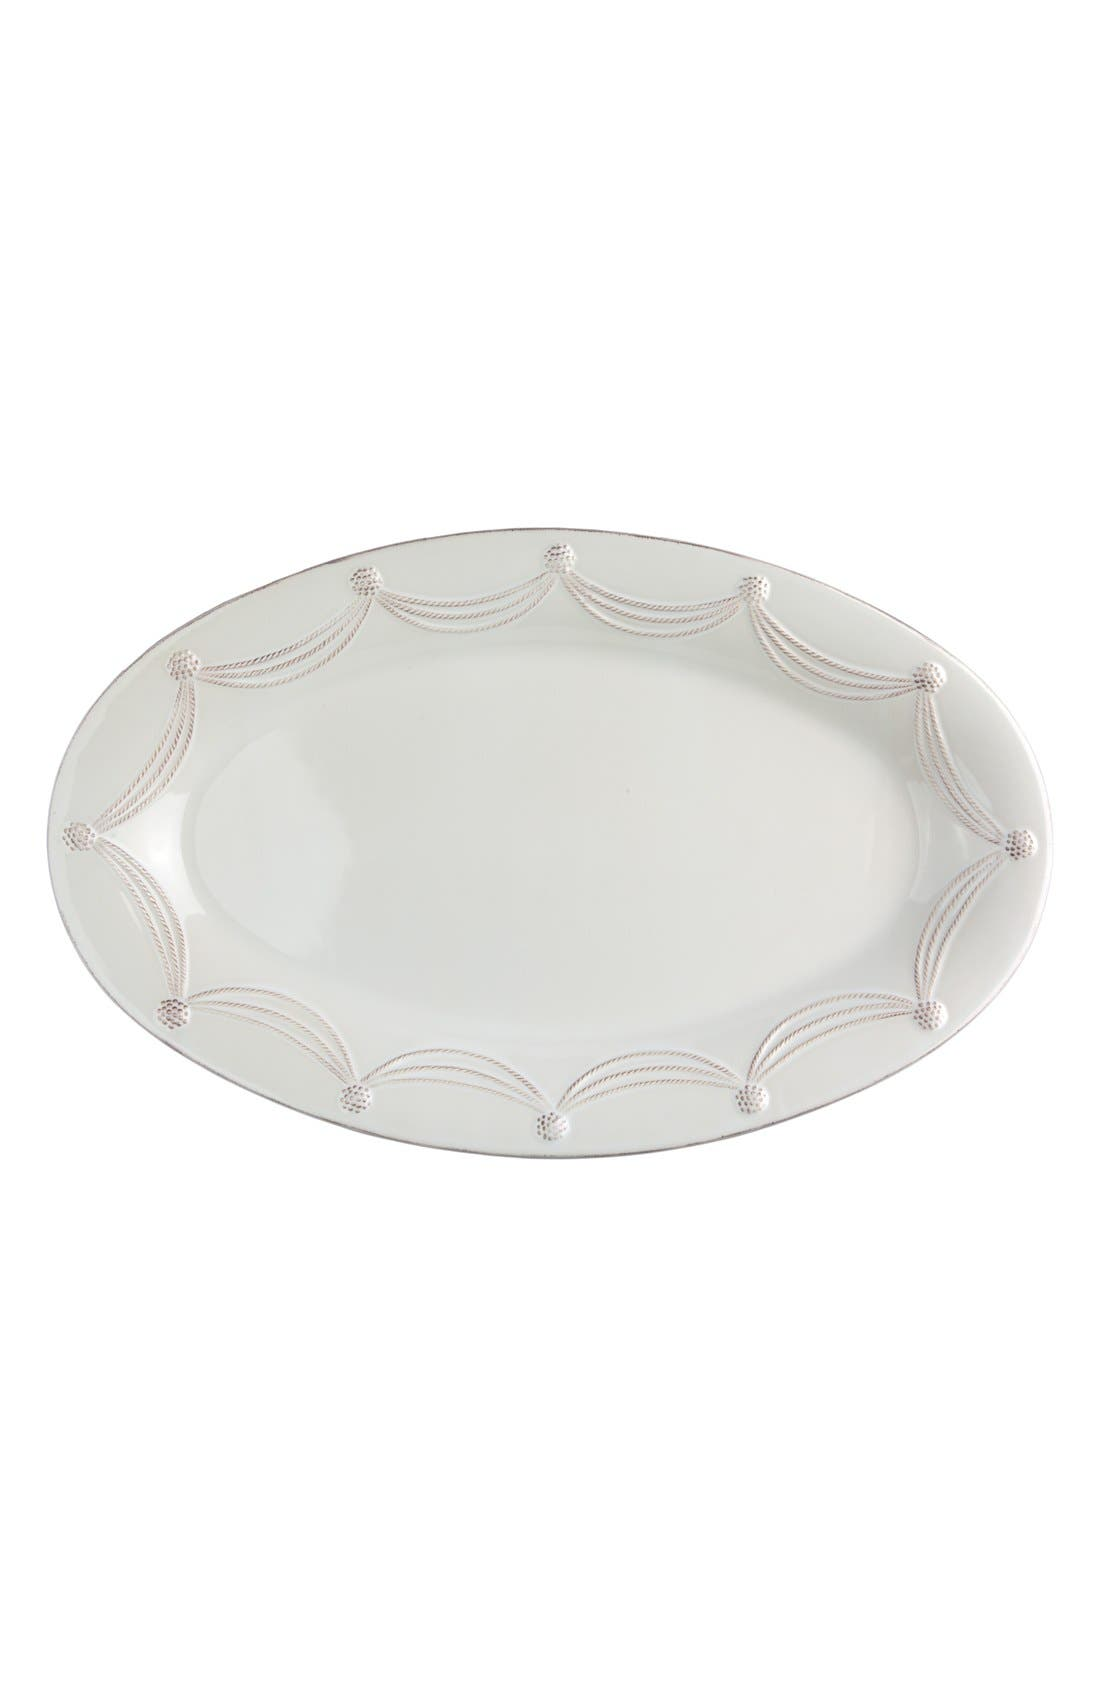 'Berry and Thread' Oval Platter,                             Main thumbnail 1, color,                             100